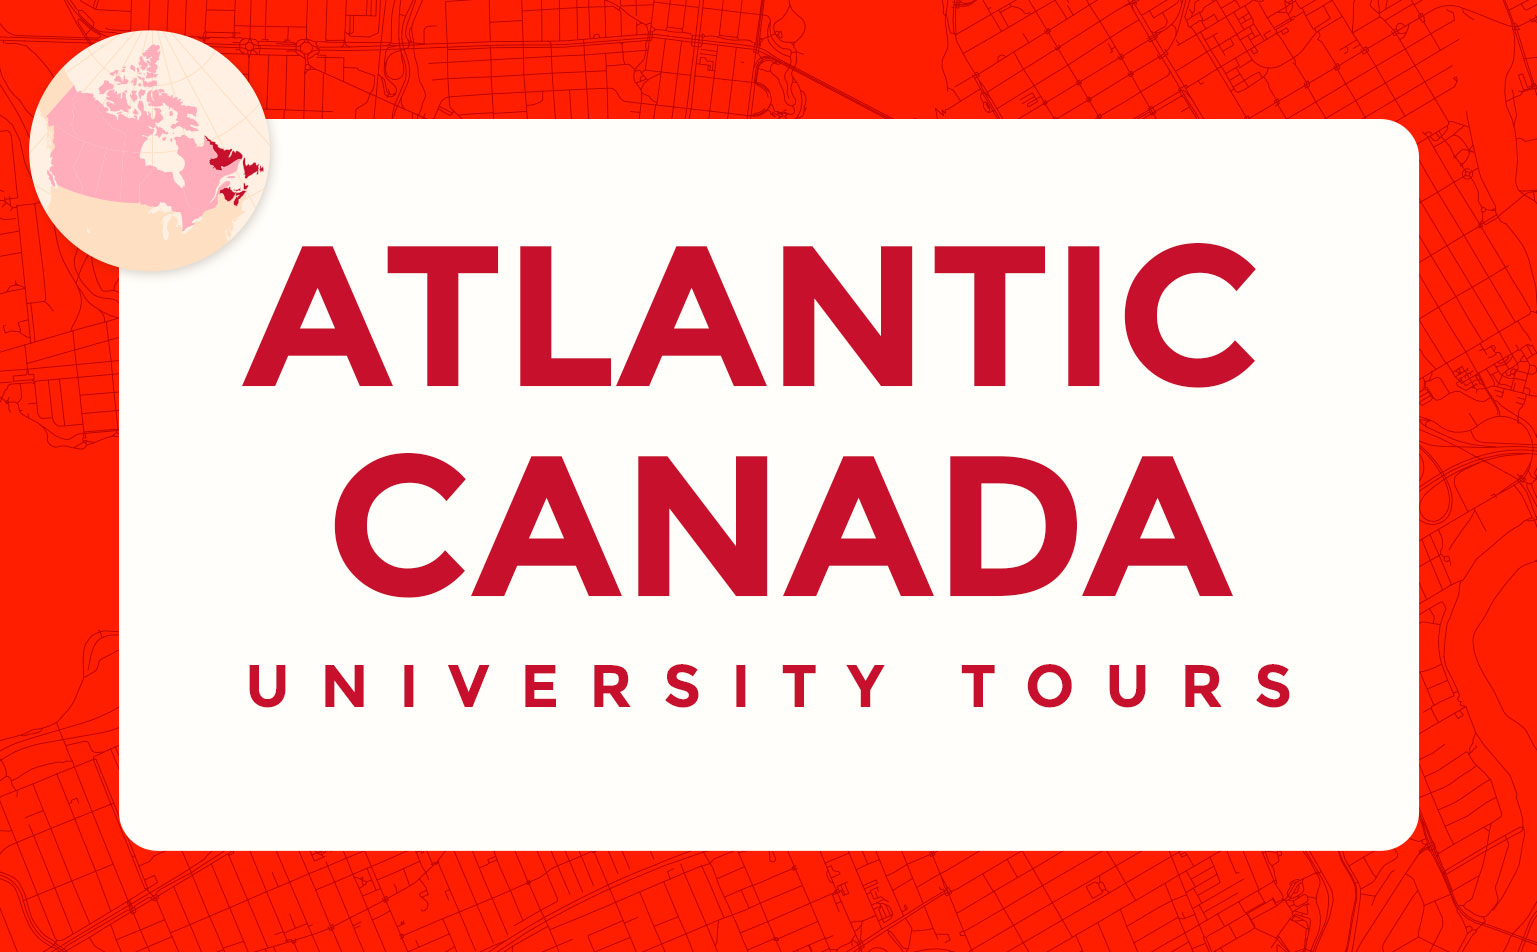 The Ultimate Student Guide to Virtual University Tours in Atlantic Canada